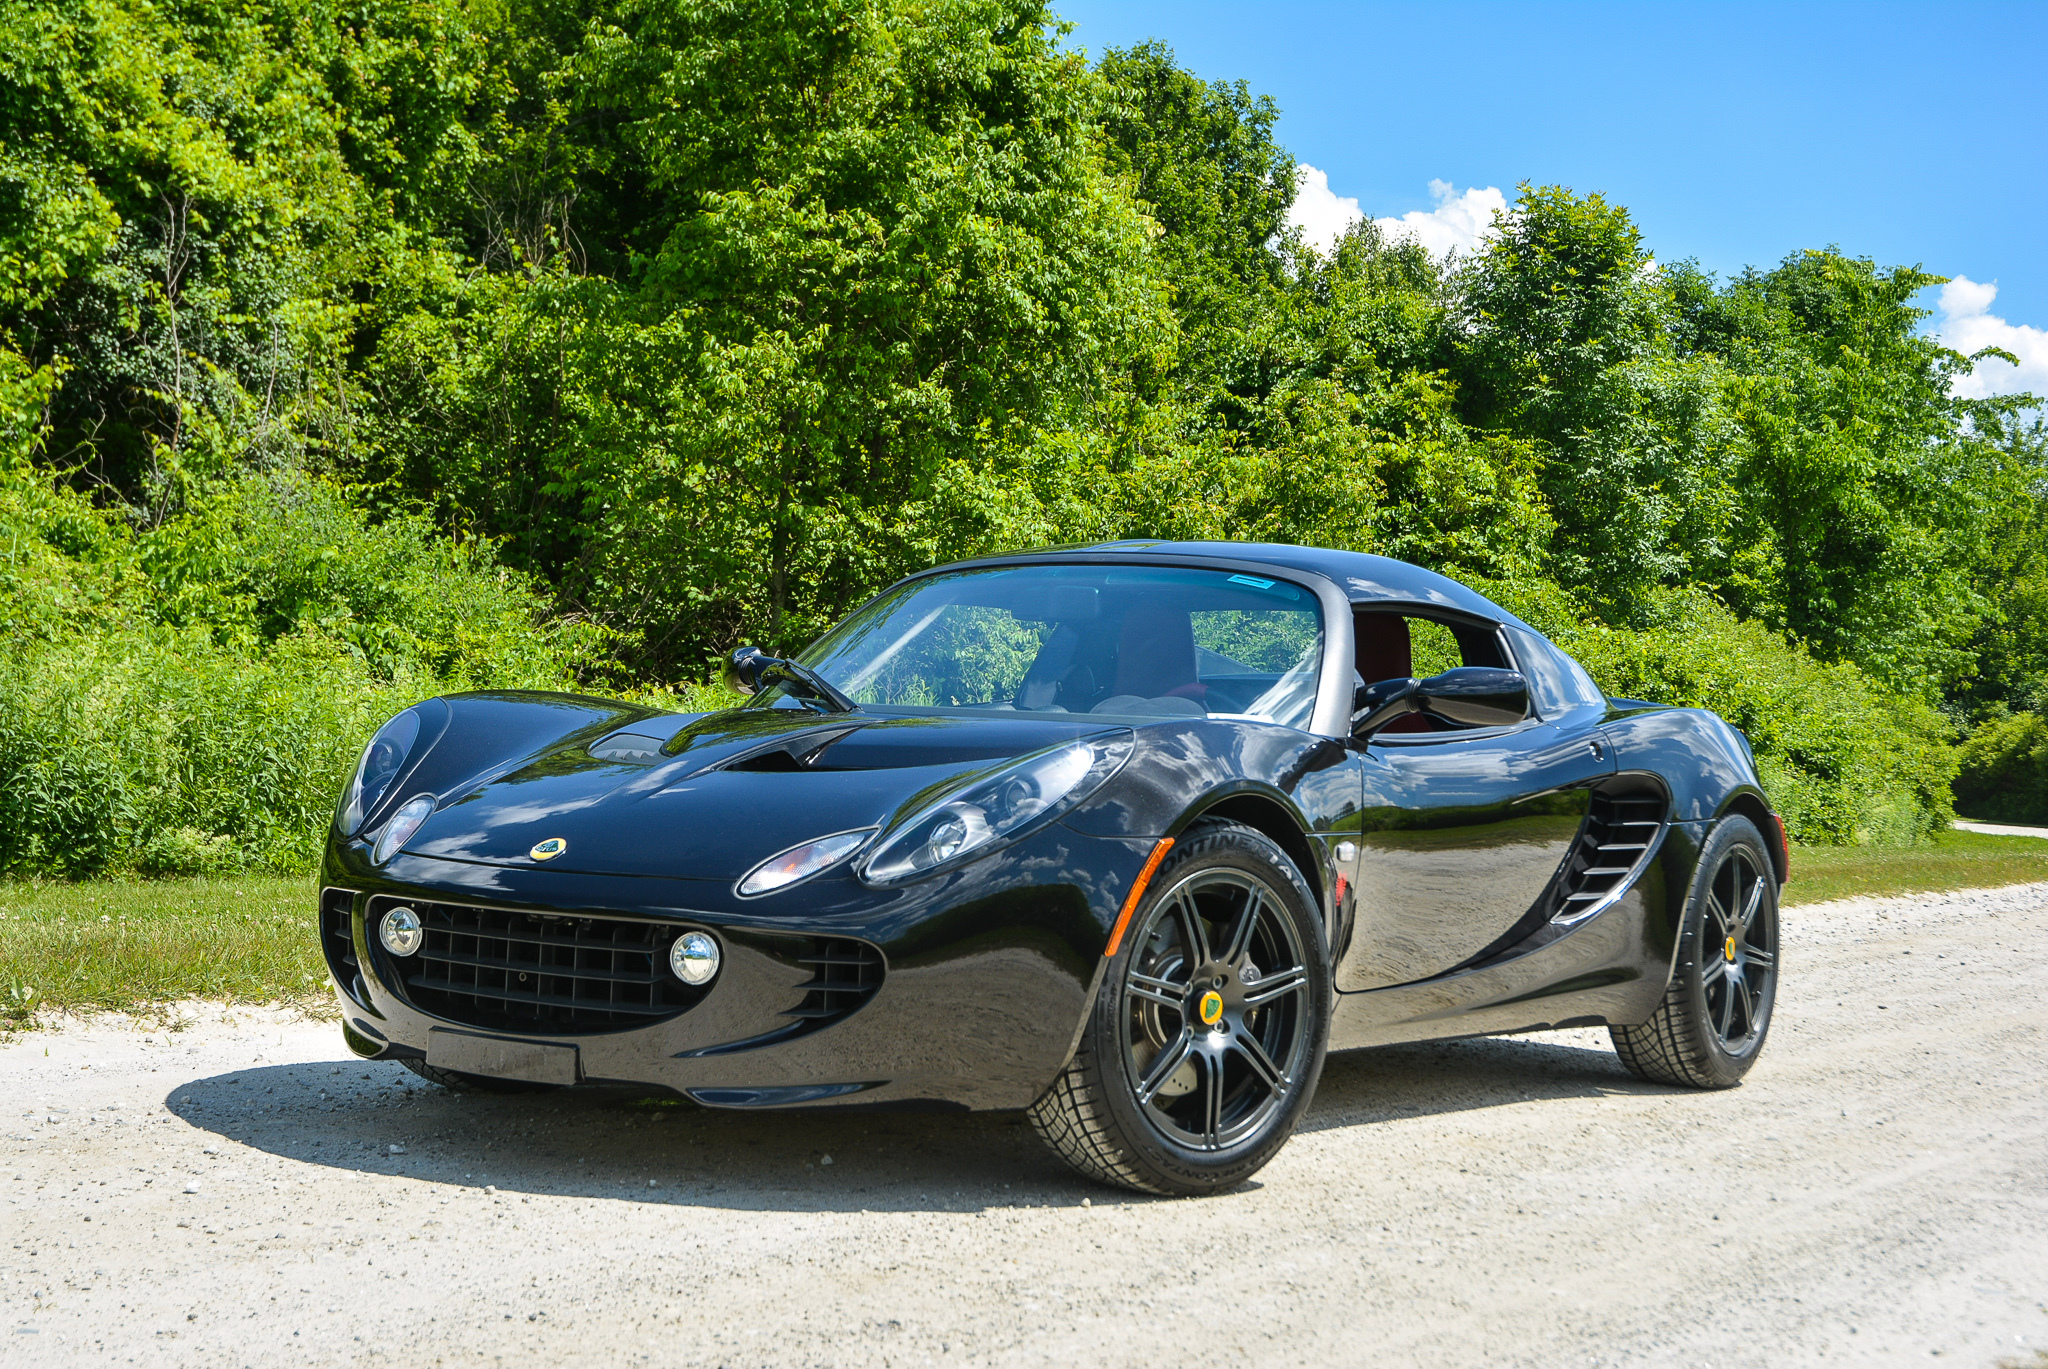 2005 lotus elise 1 8 hunting ridge motors edition image id 369230 image abyss image abyss alpha coders